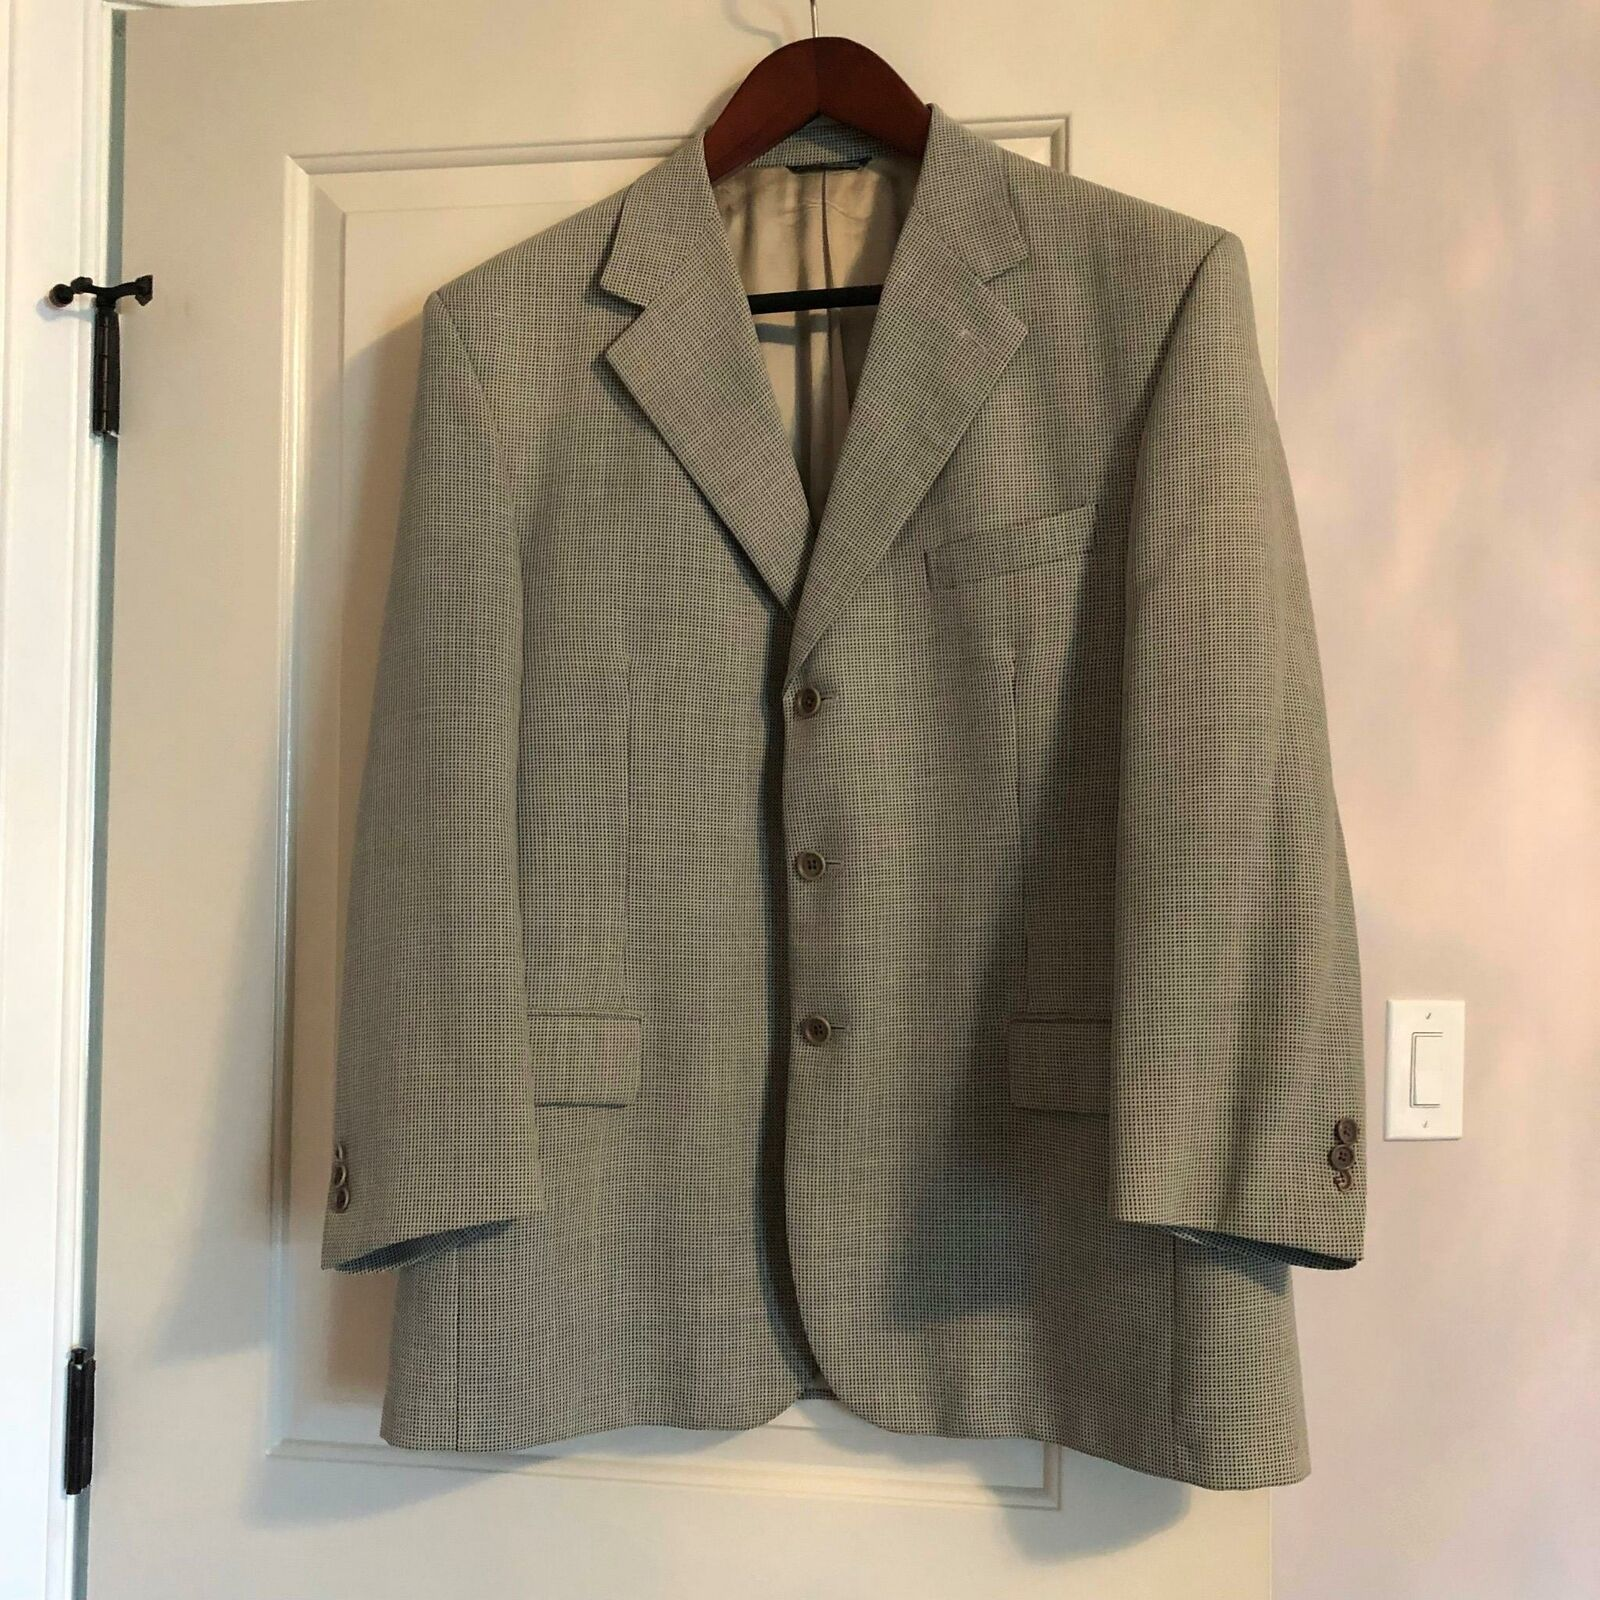 Primary image for EUC NOGARA 1945 Gray Single Breasted Sport Jacket SZ IT 60/US 48